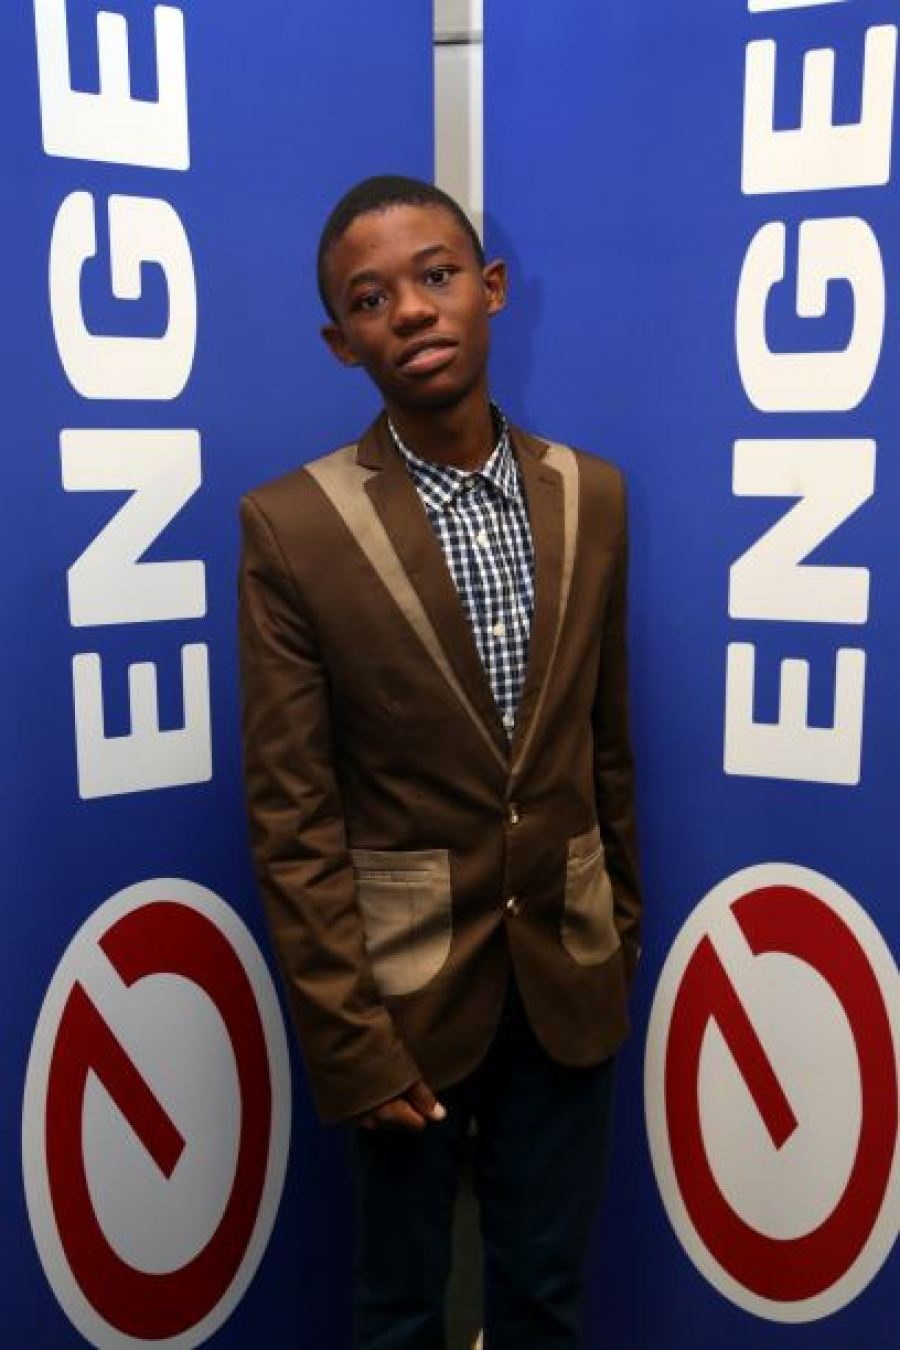 Education is key to success – EC's top Engen Maths and Science School matric